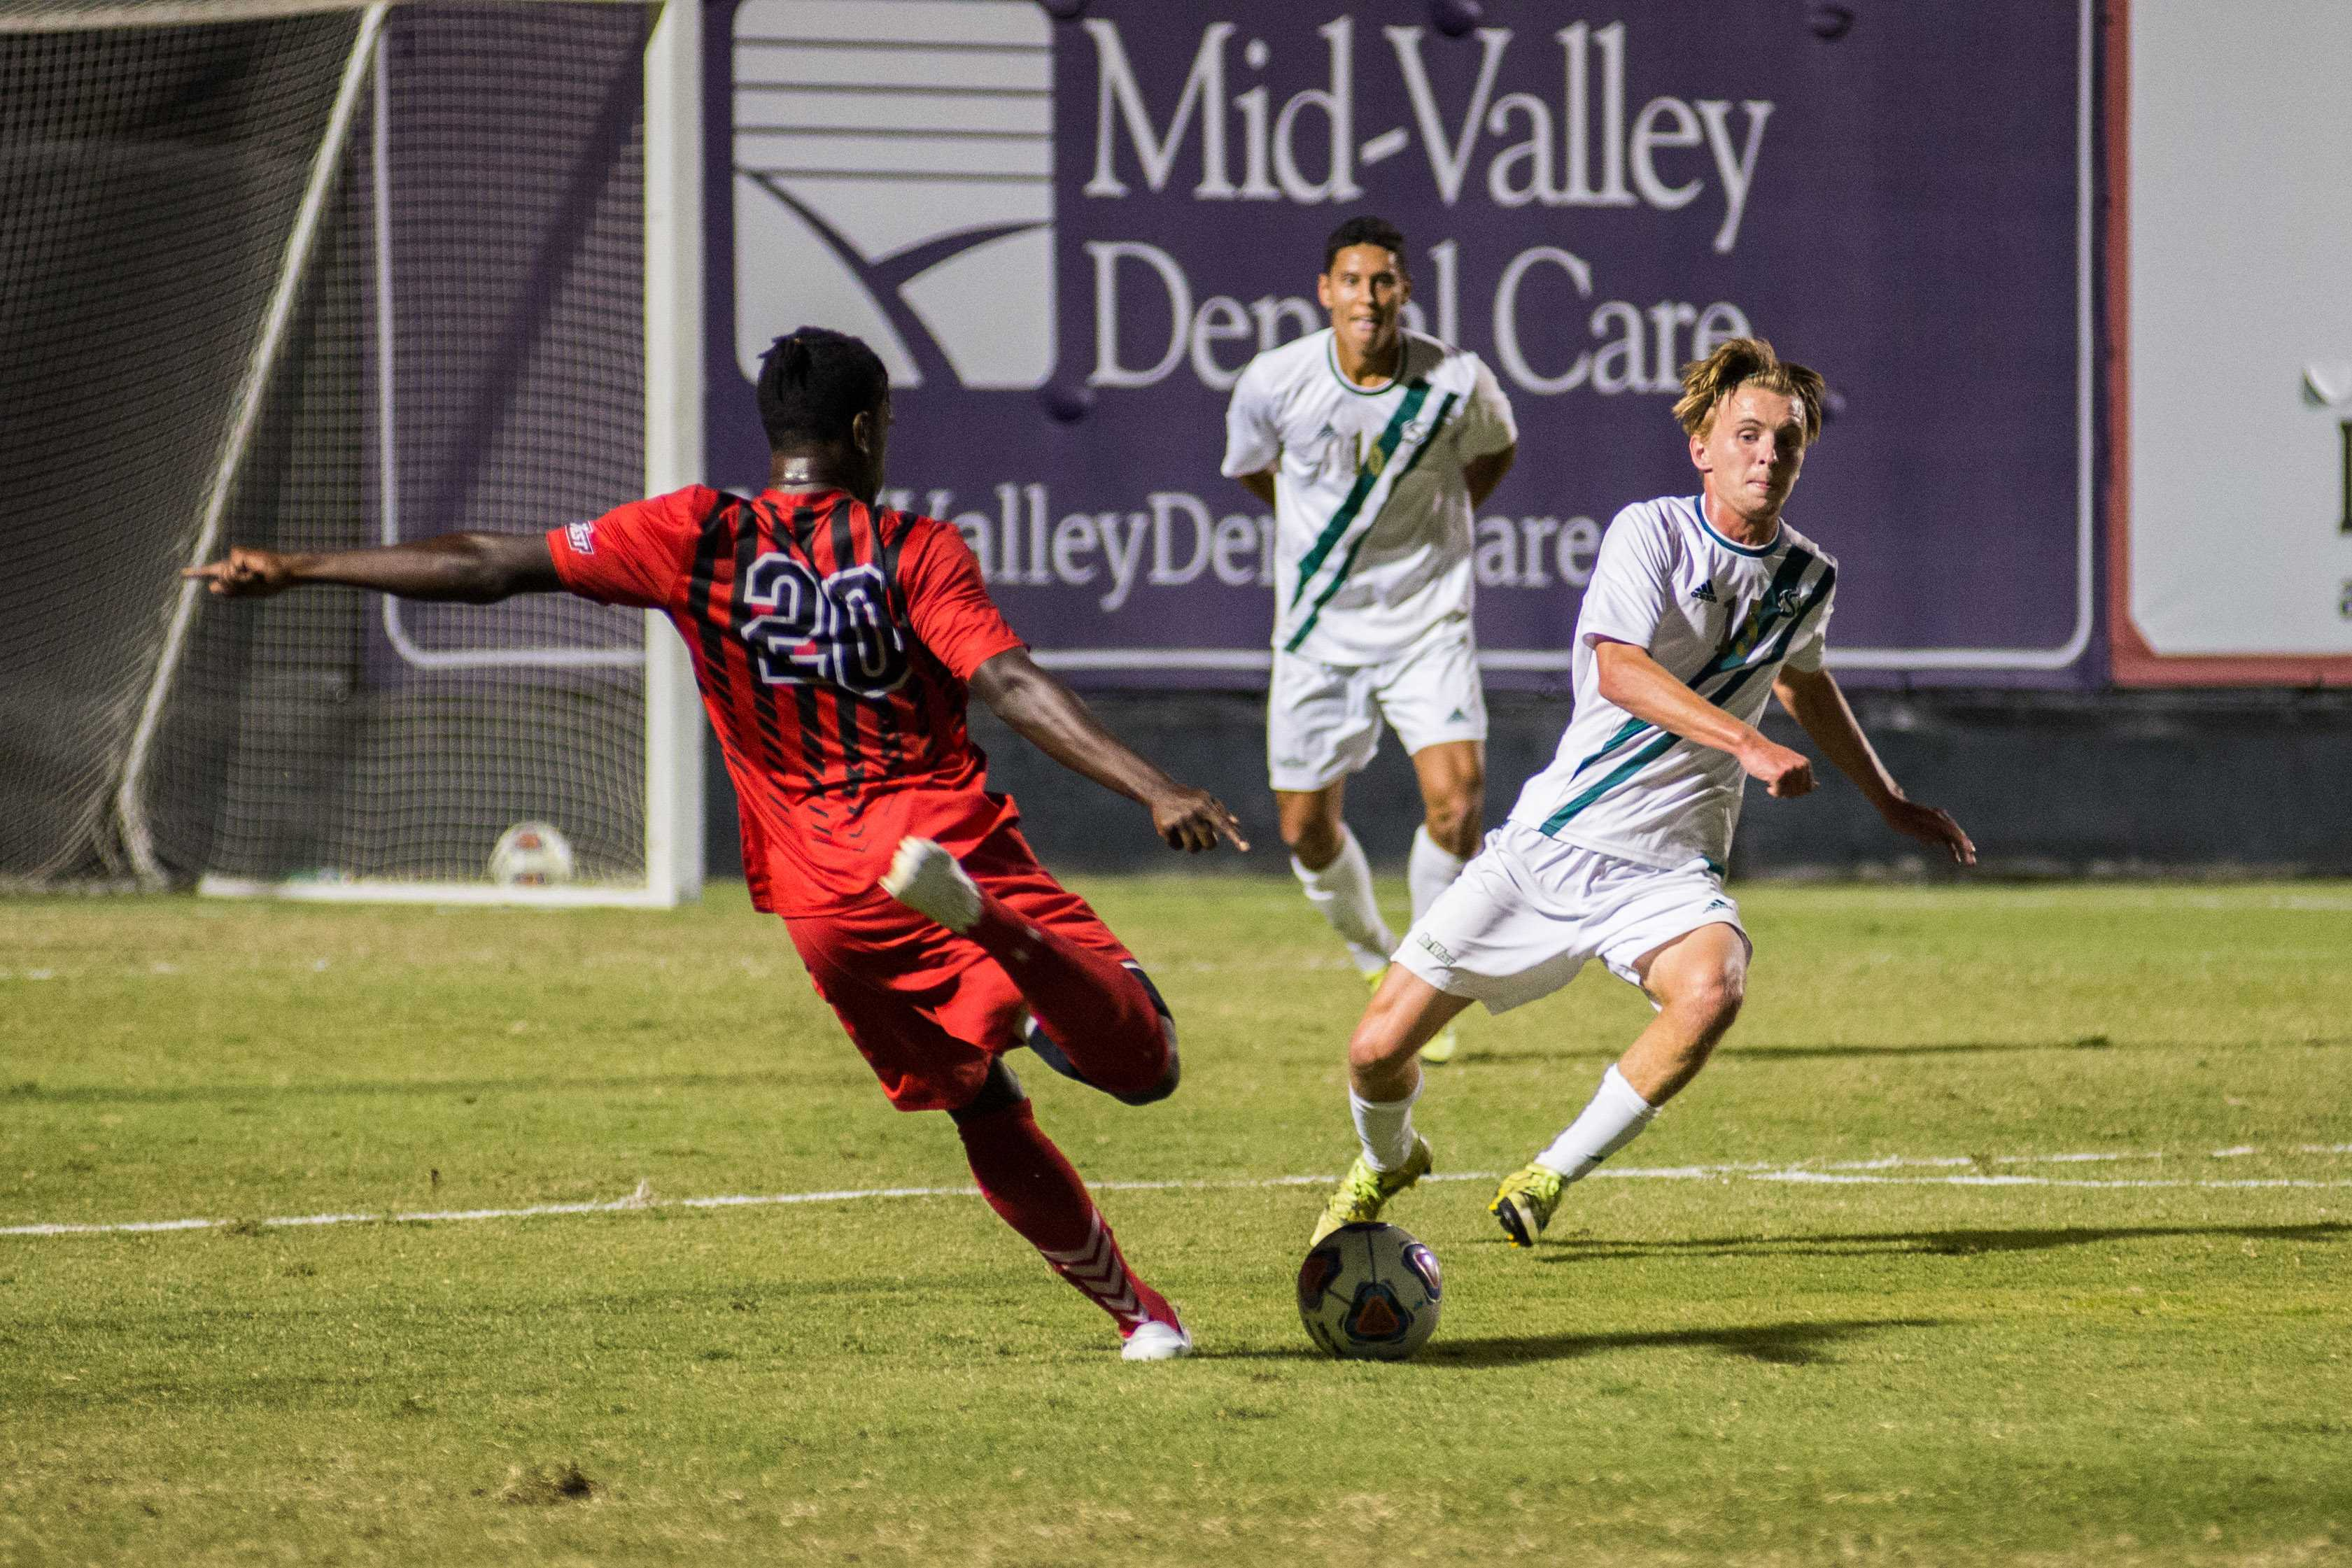 CSUN and CSUF player both race to kick the ball